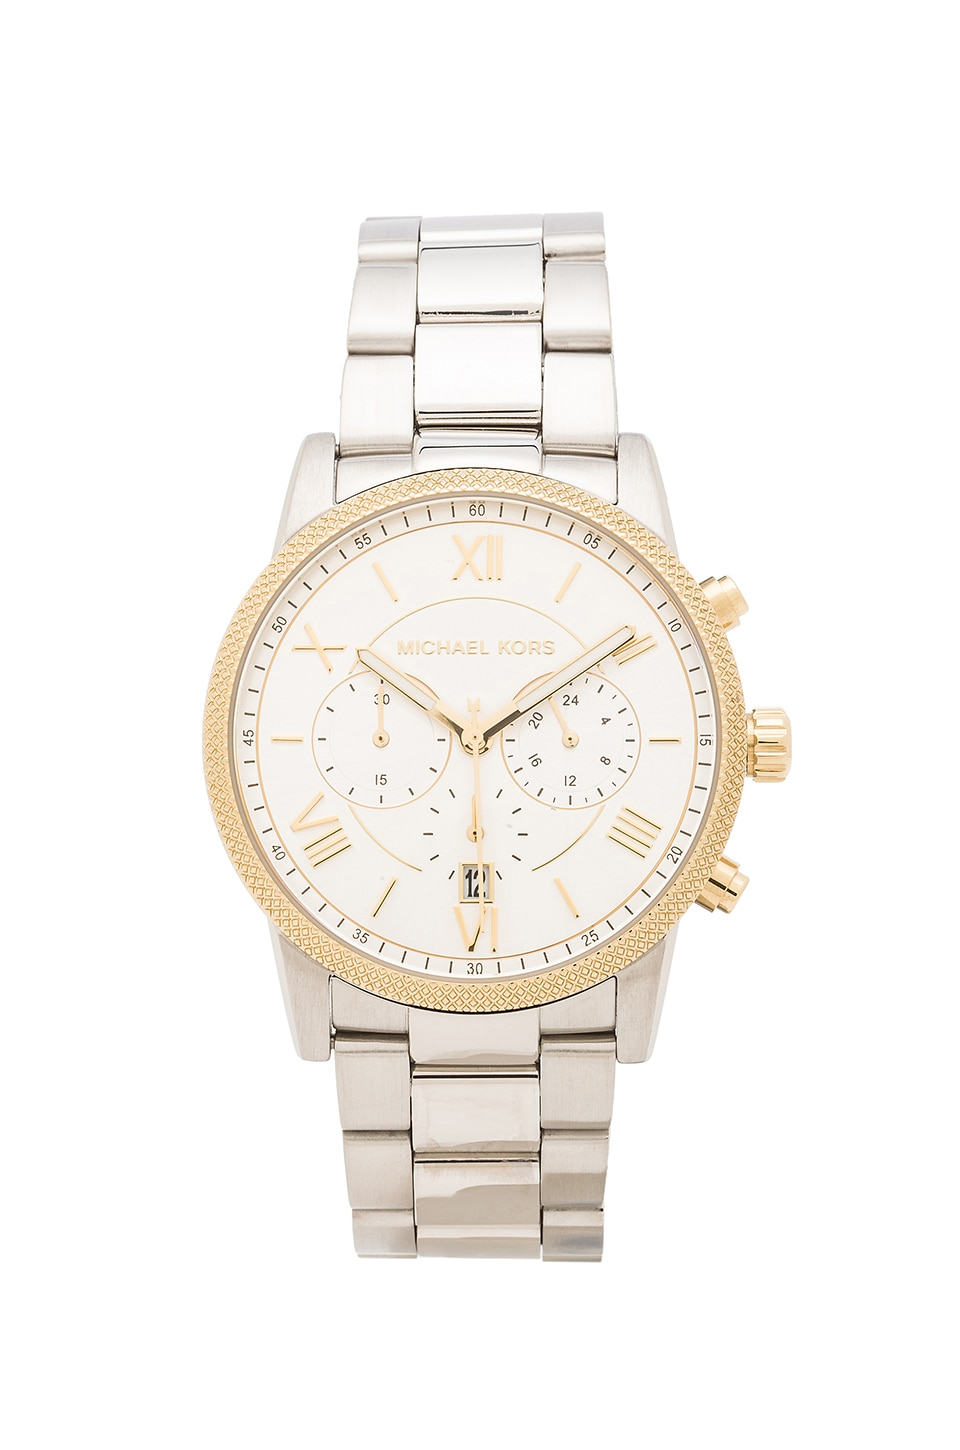 Michael Kors Hawthorne in Silver & Gold